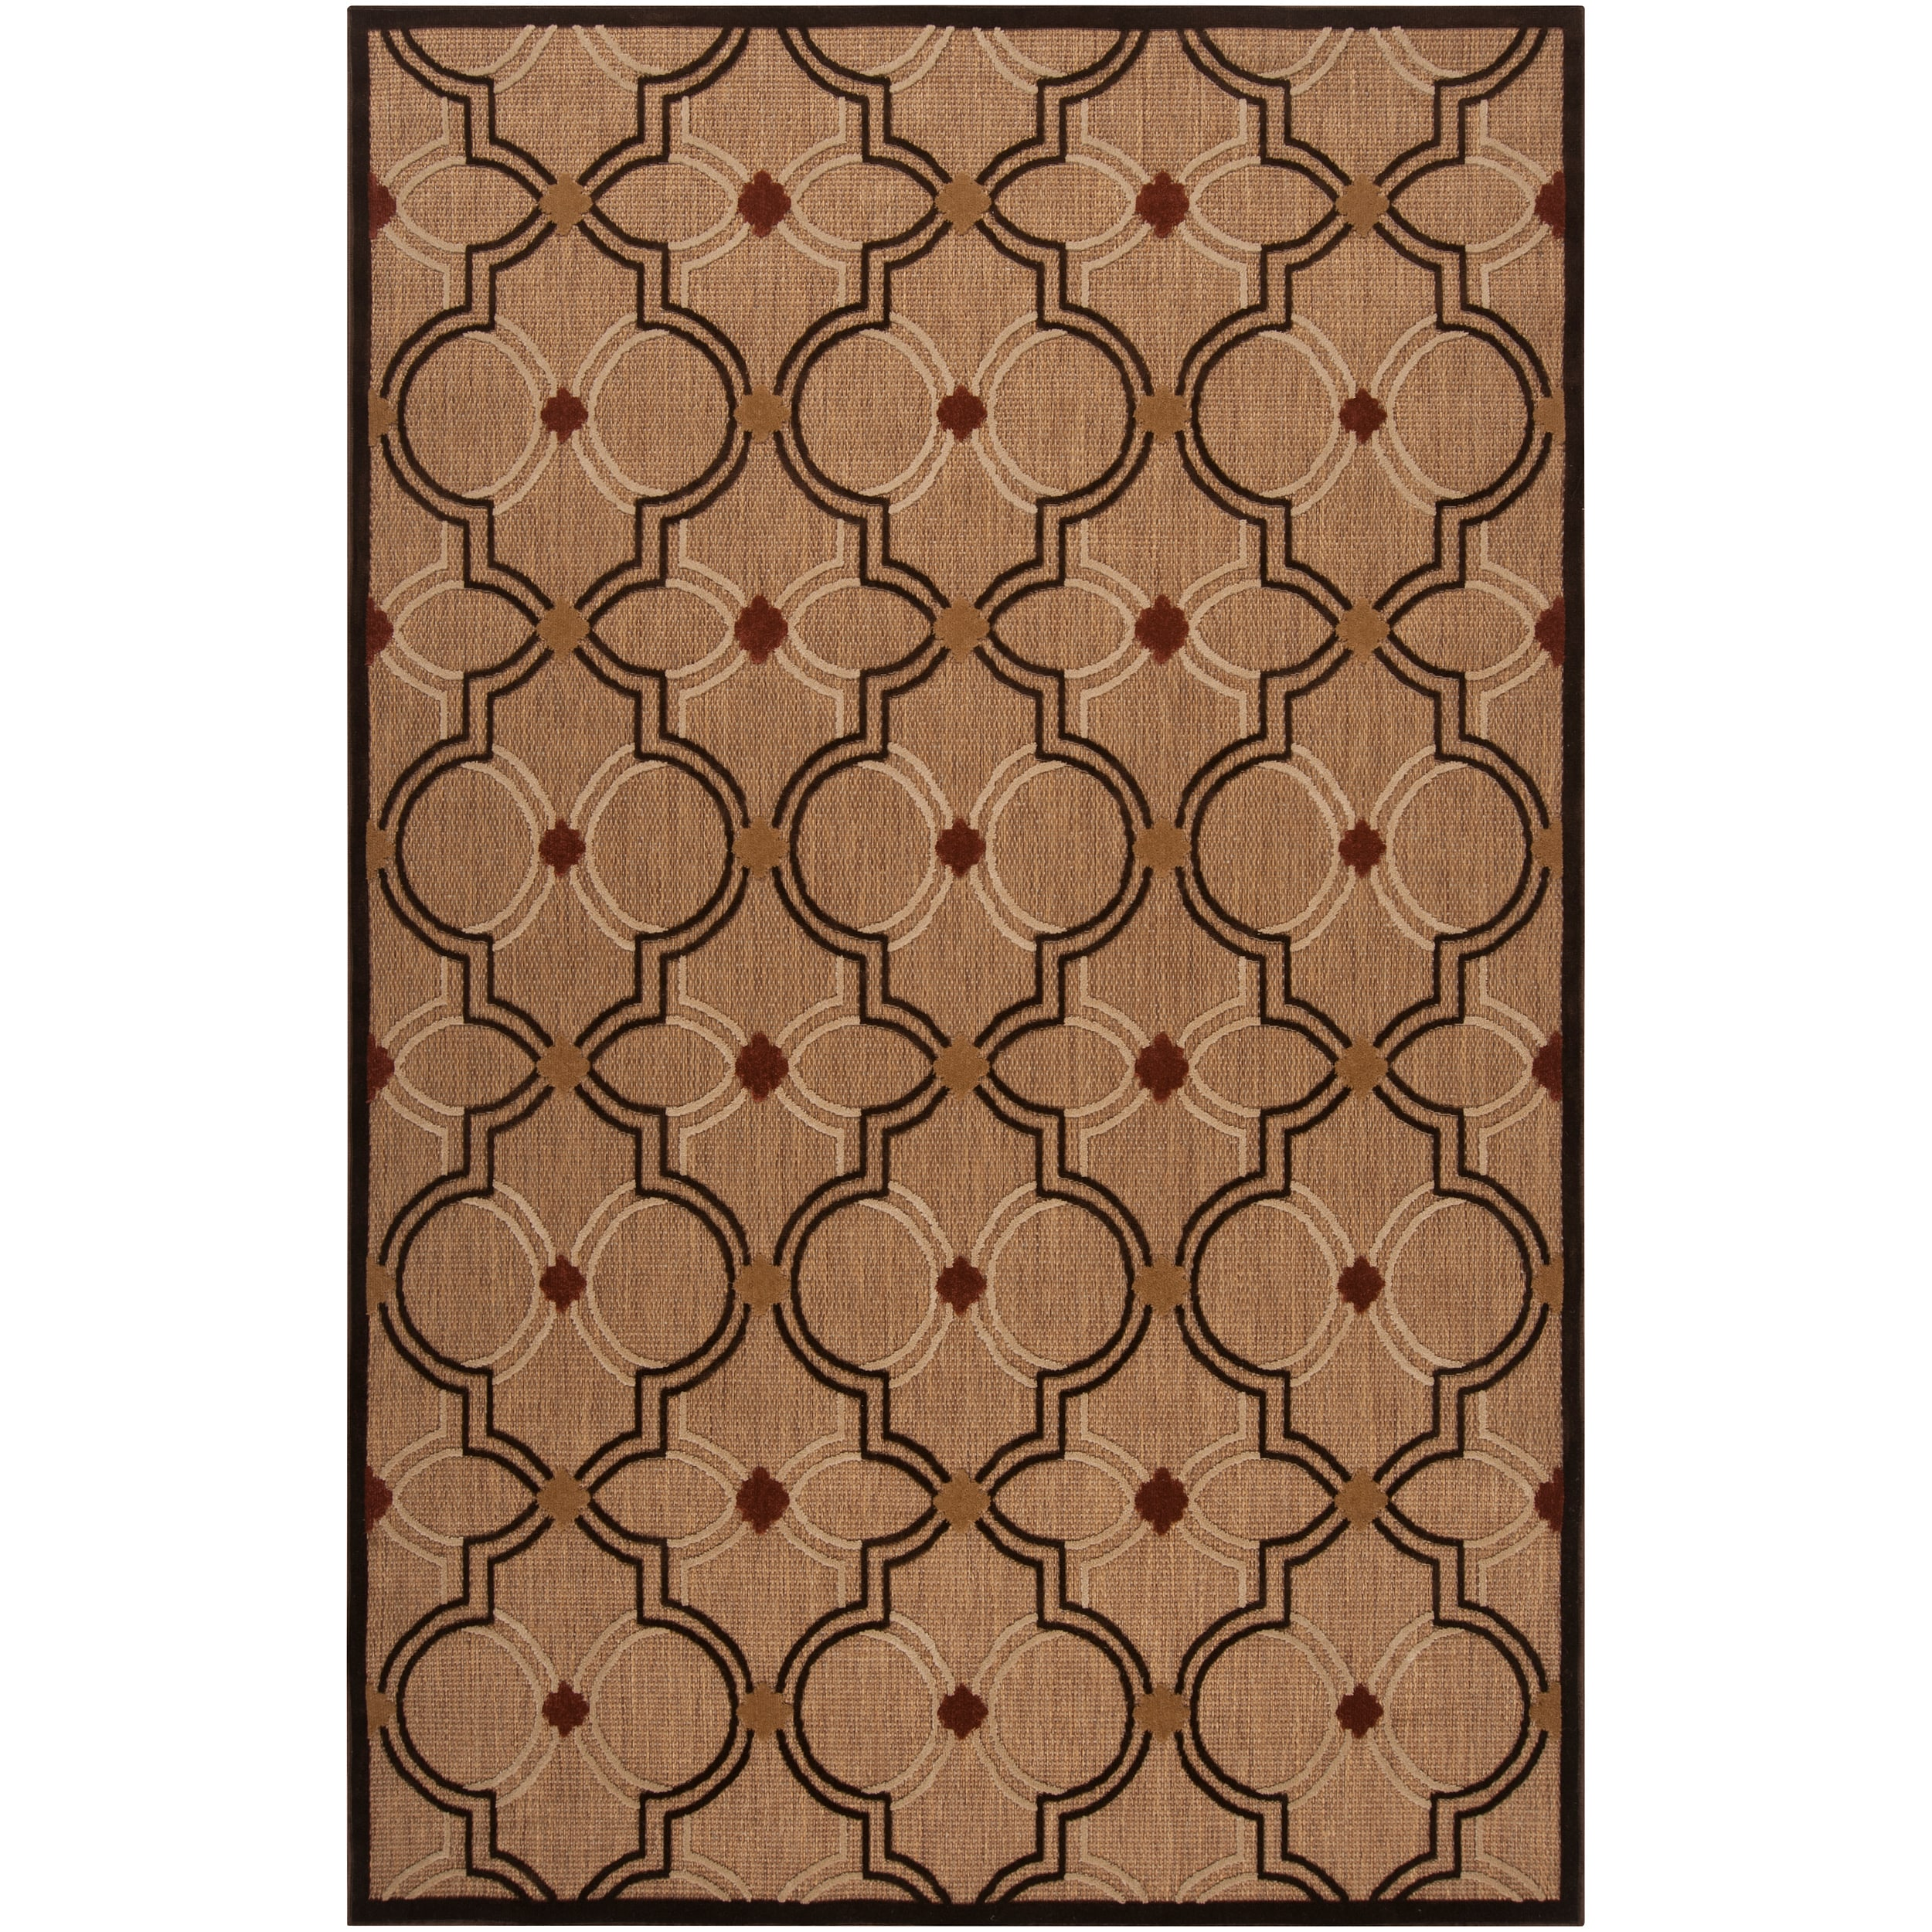 Woven Brown Allusion Indoor Outdoor Moroccan Lattice Rug 3 9 x 5